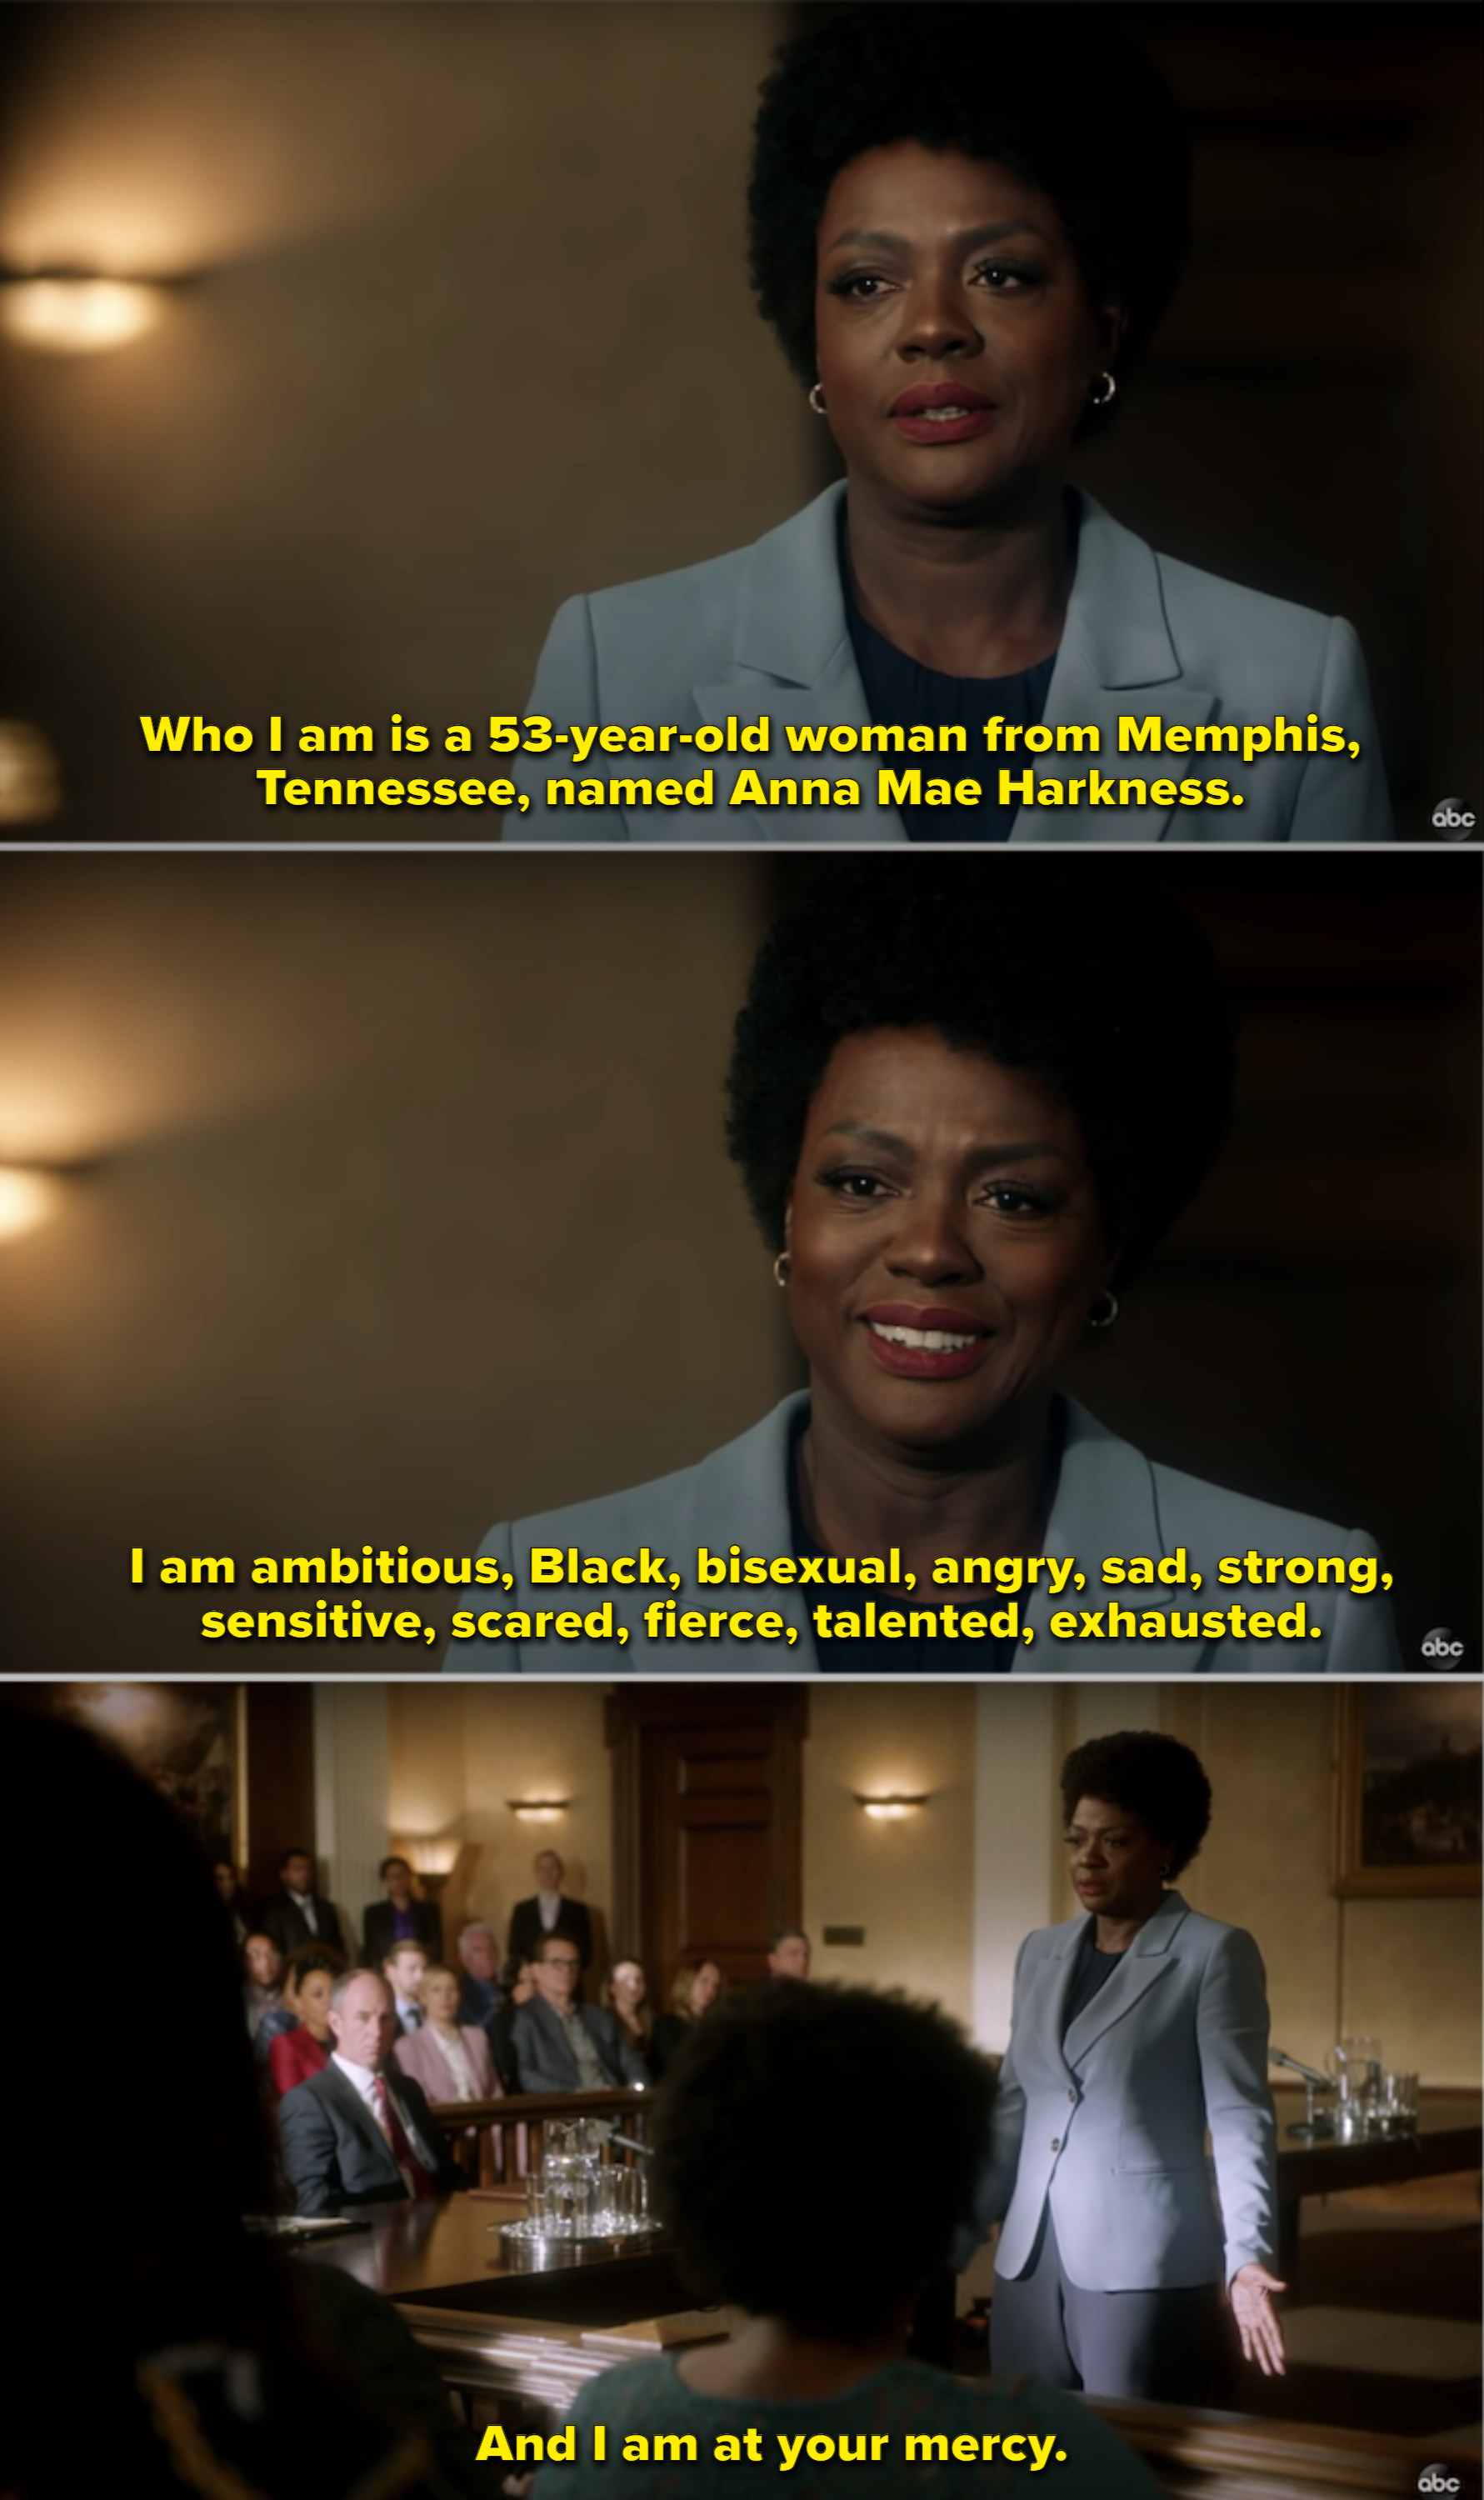 Annalise wearing a grey suit and speaking to the jury in court